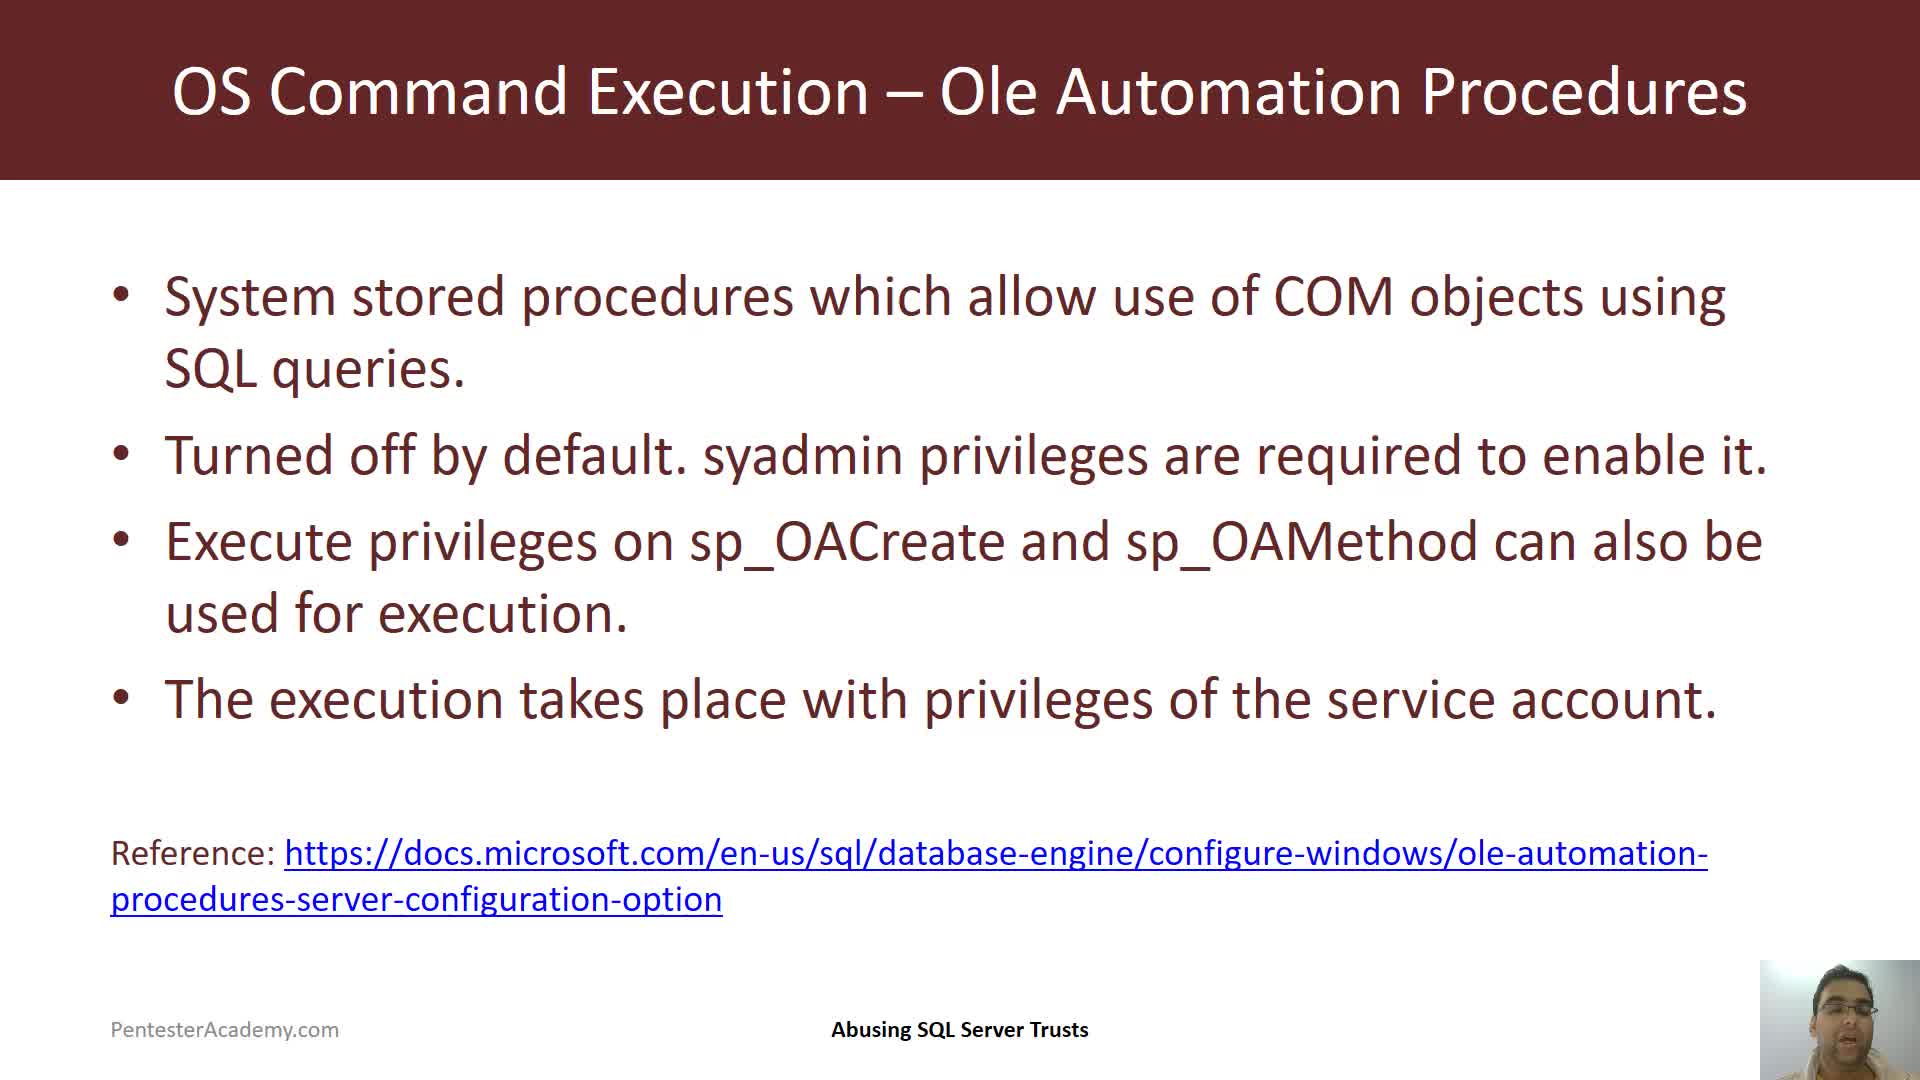 Command Execution Part 2